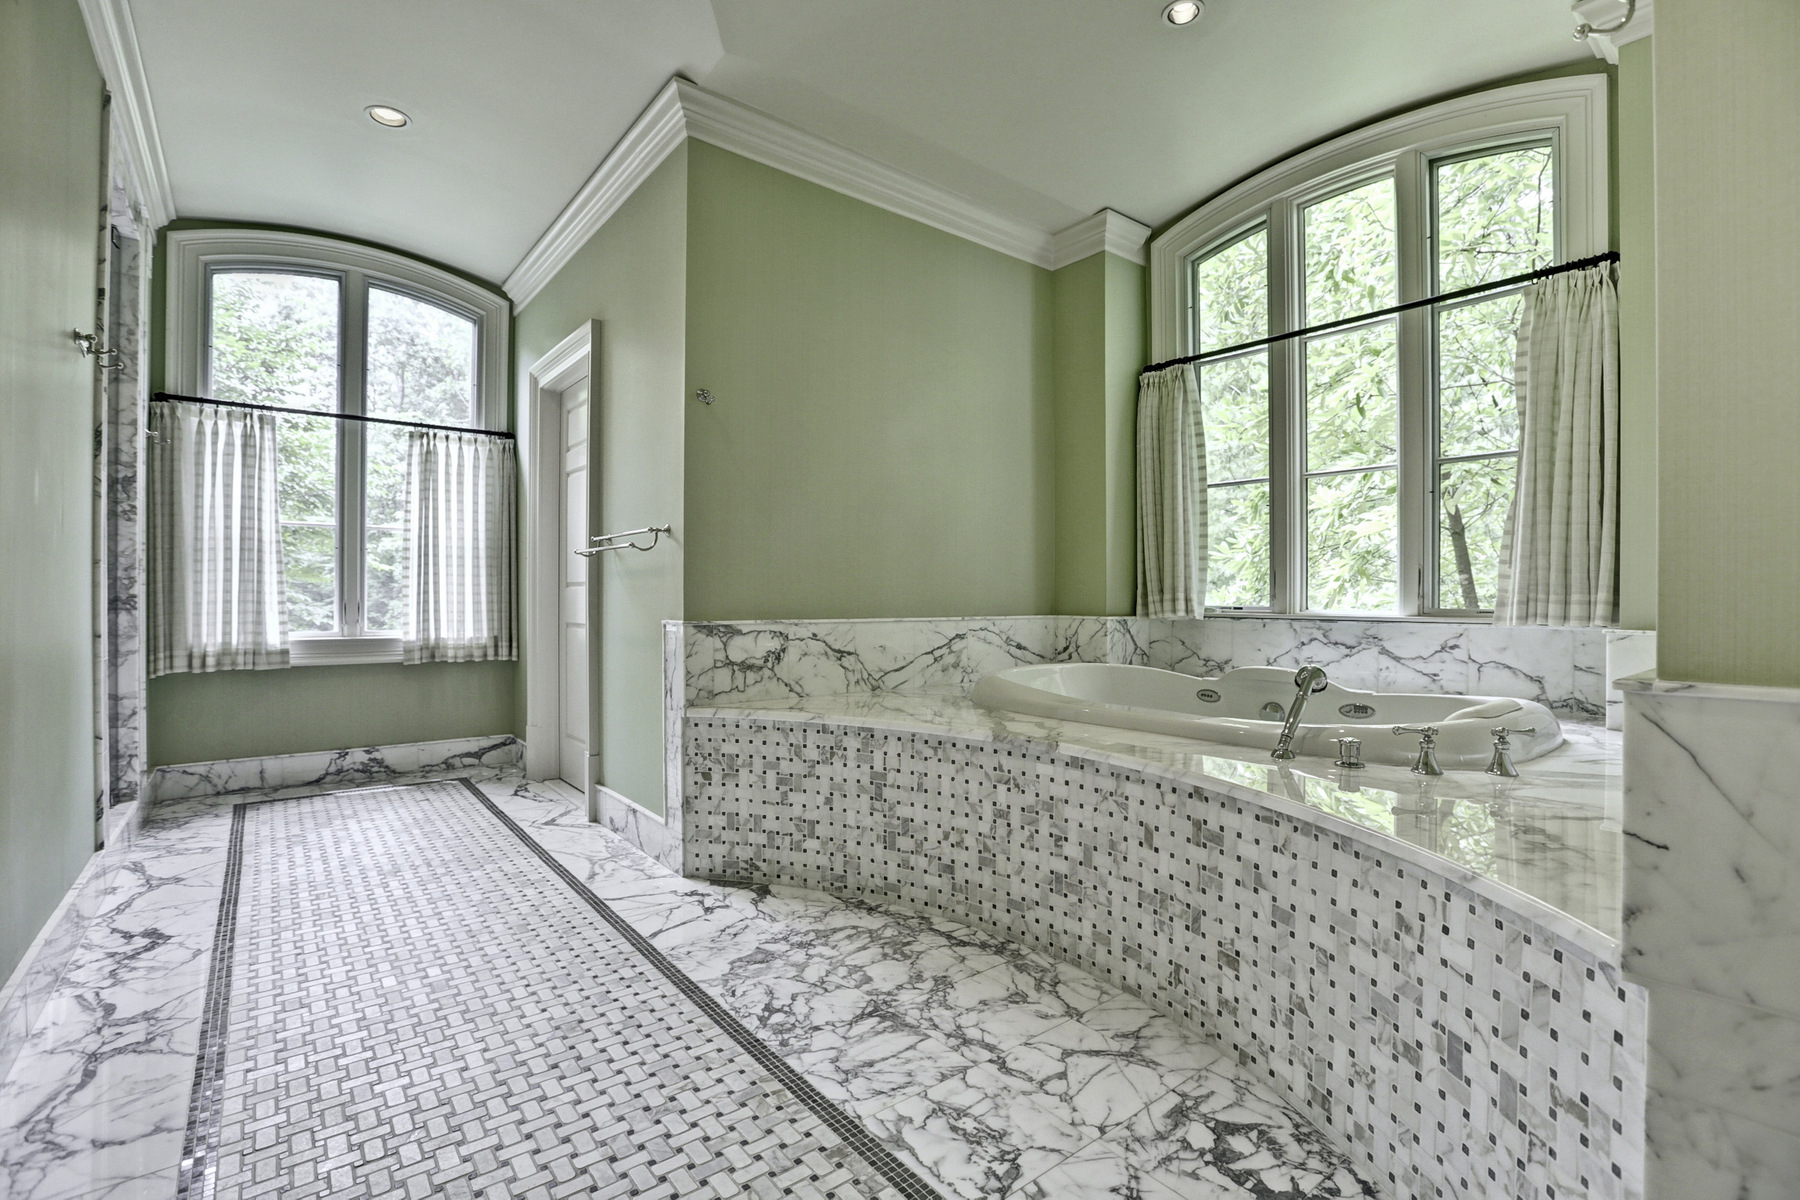 Additional photo for property listing at Renovated Brick Home In Sandy Springs With Pool And English Gardens 5660 Glen Errol Road Atlanta, ジョージア 30327 アメリカ合衆国